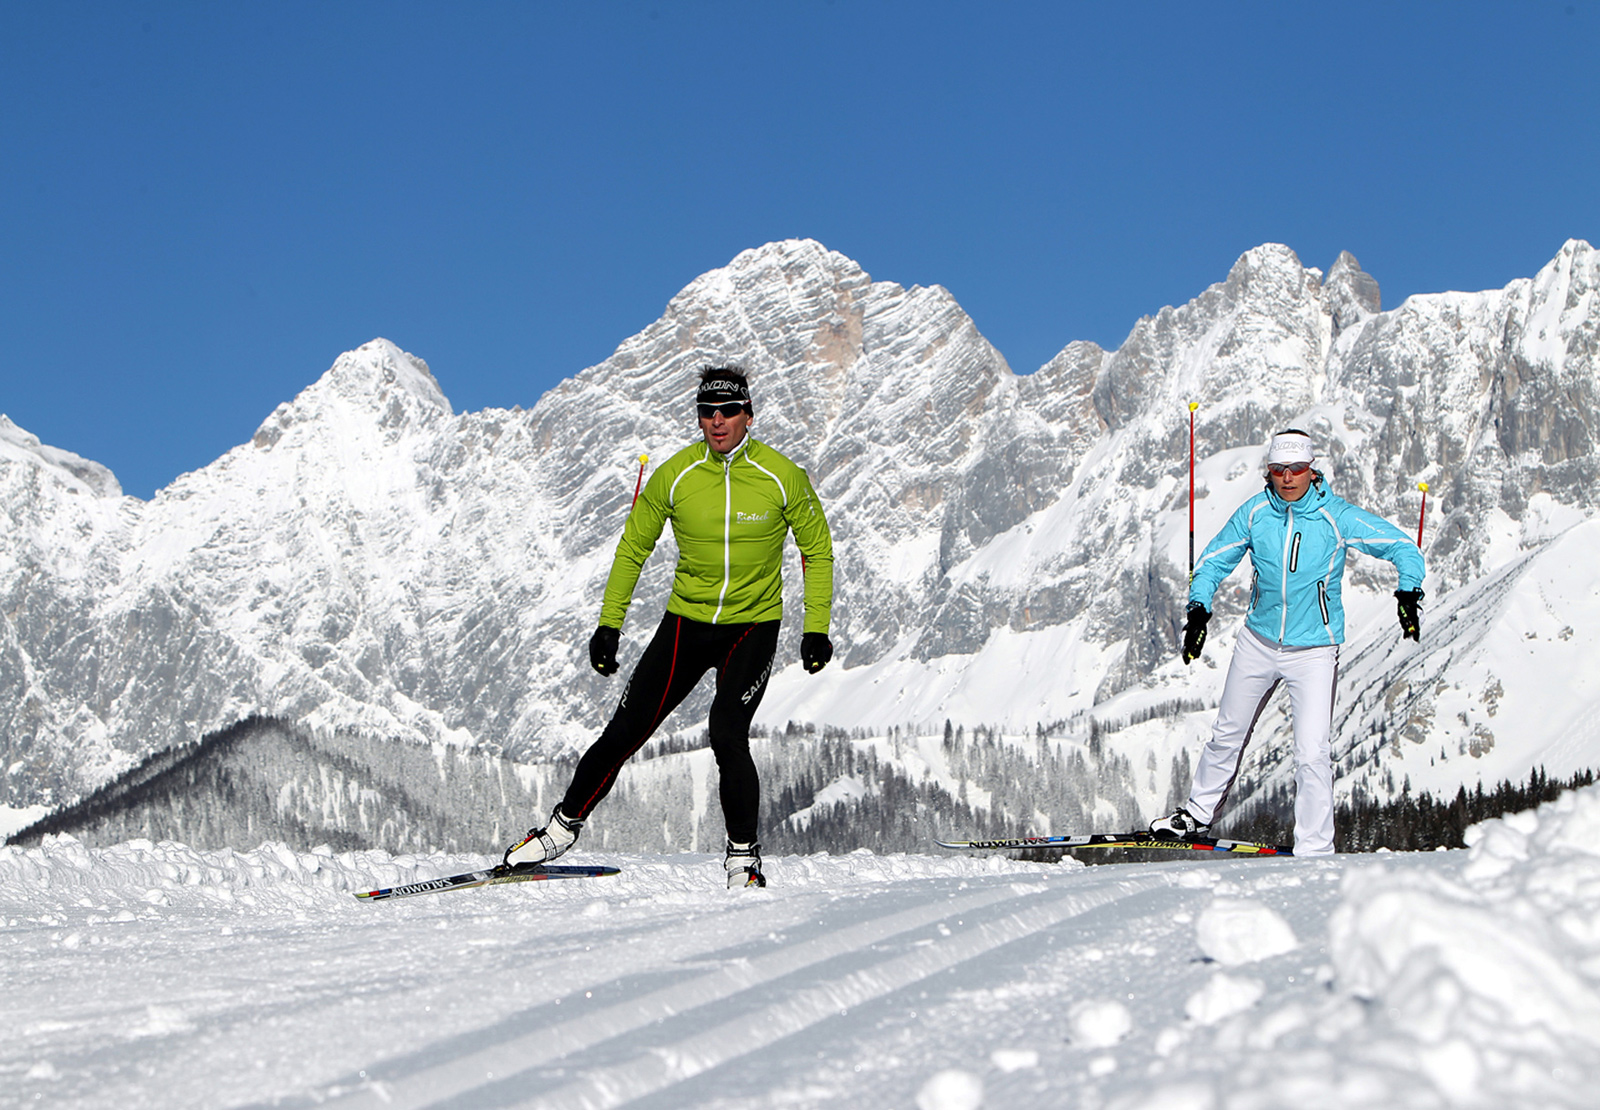 Sífutás Ramsau am Dachstein Forrás: (c) Steiermark Tourismus_foto_photo_austria.at